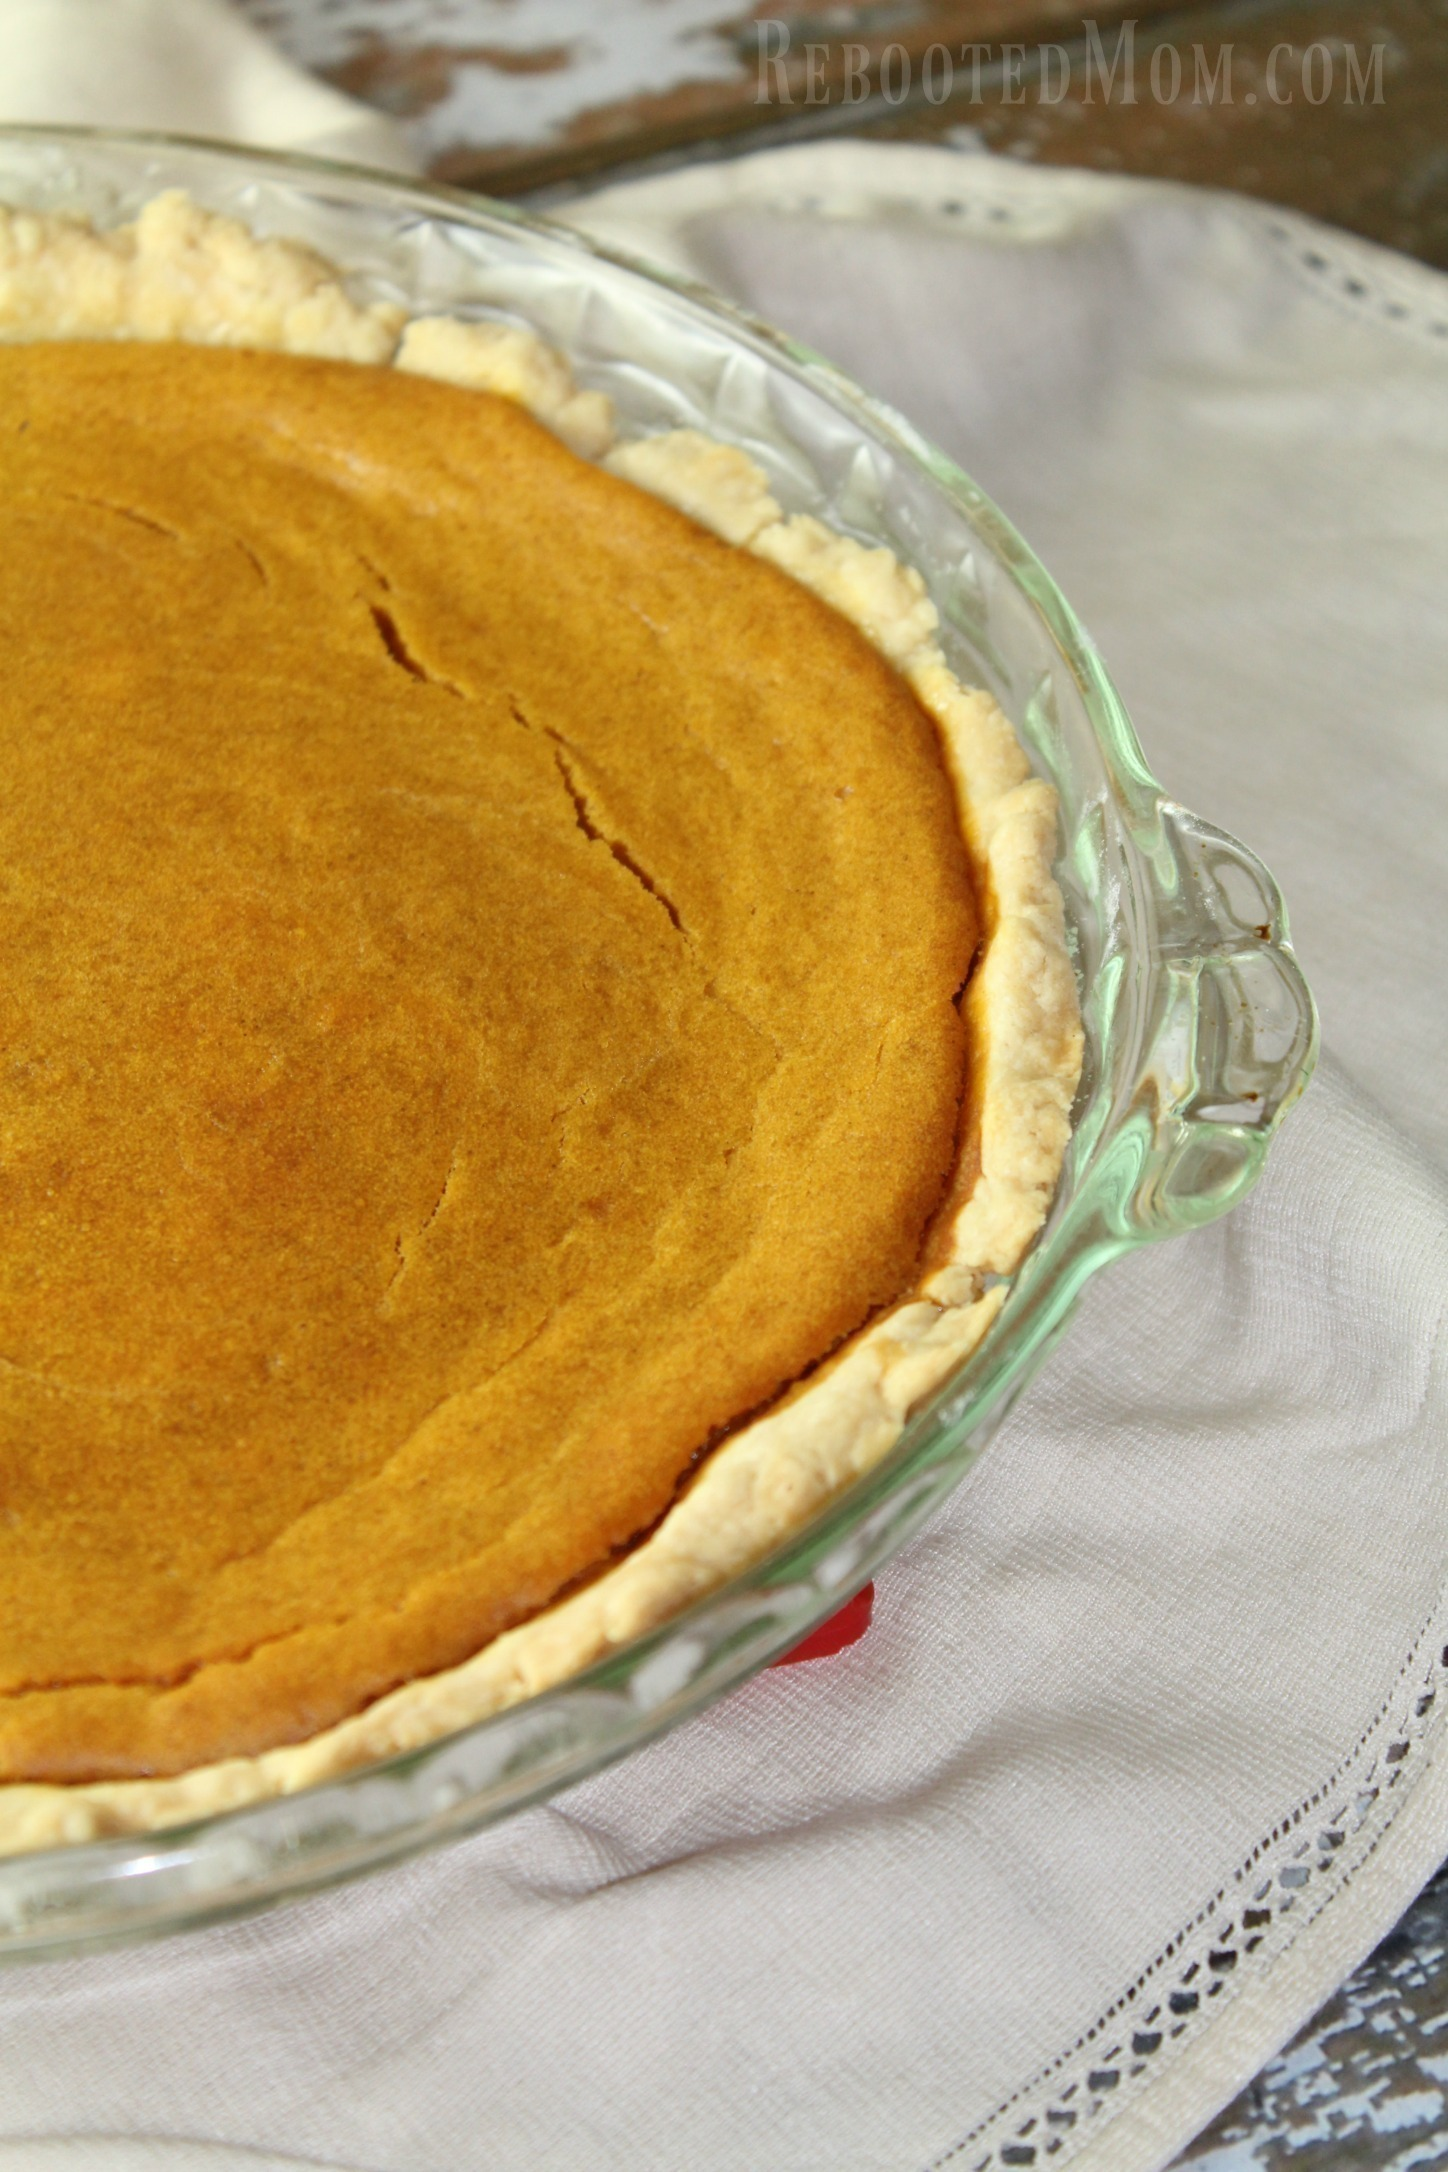 This Coconut Sweet Potato Pie includes maple syrup in lieu of too much sugar, and coconut oil in place of butter - it's absolutely amazing!